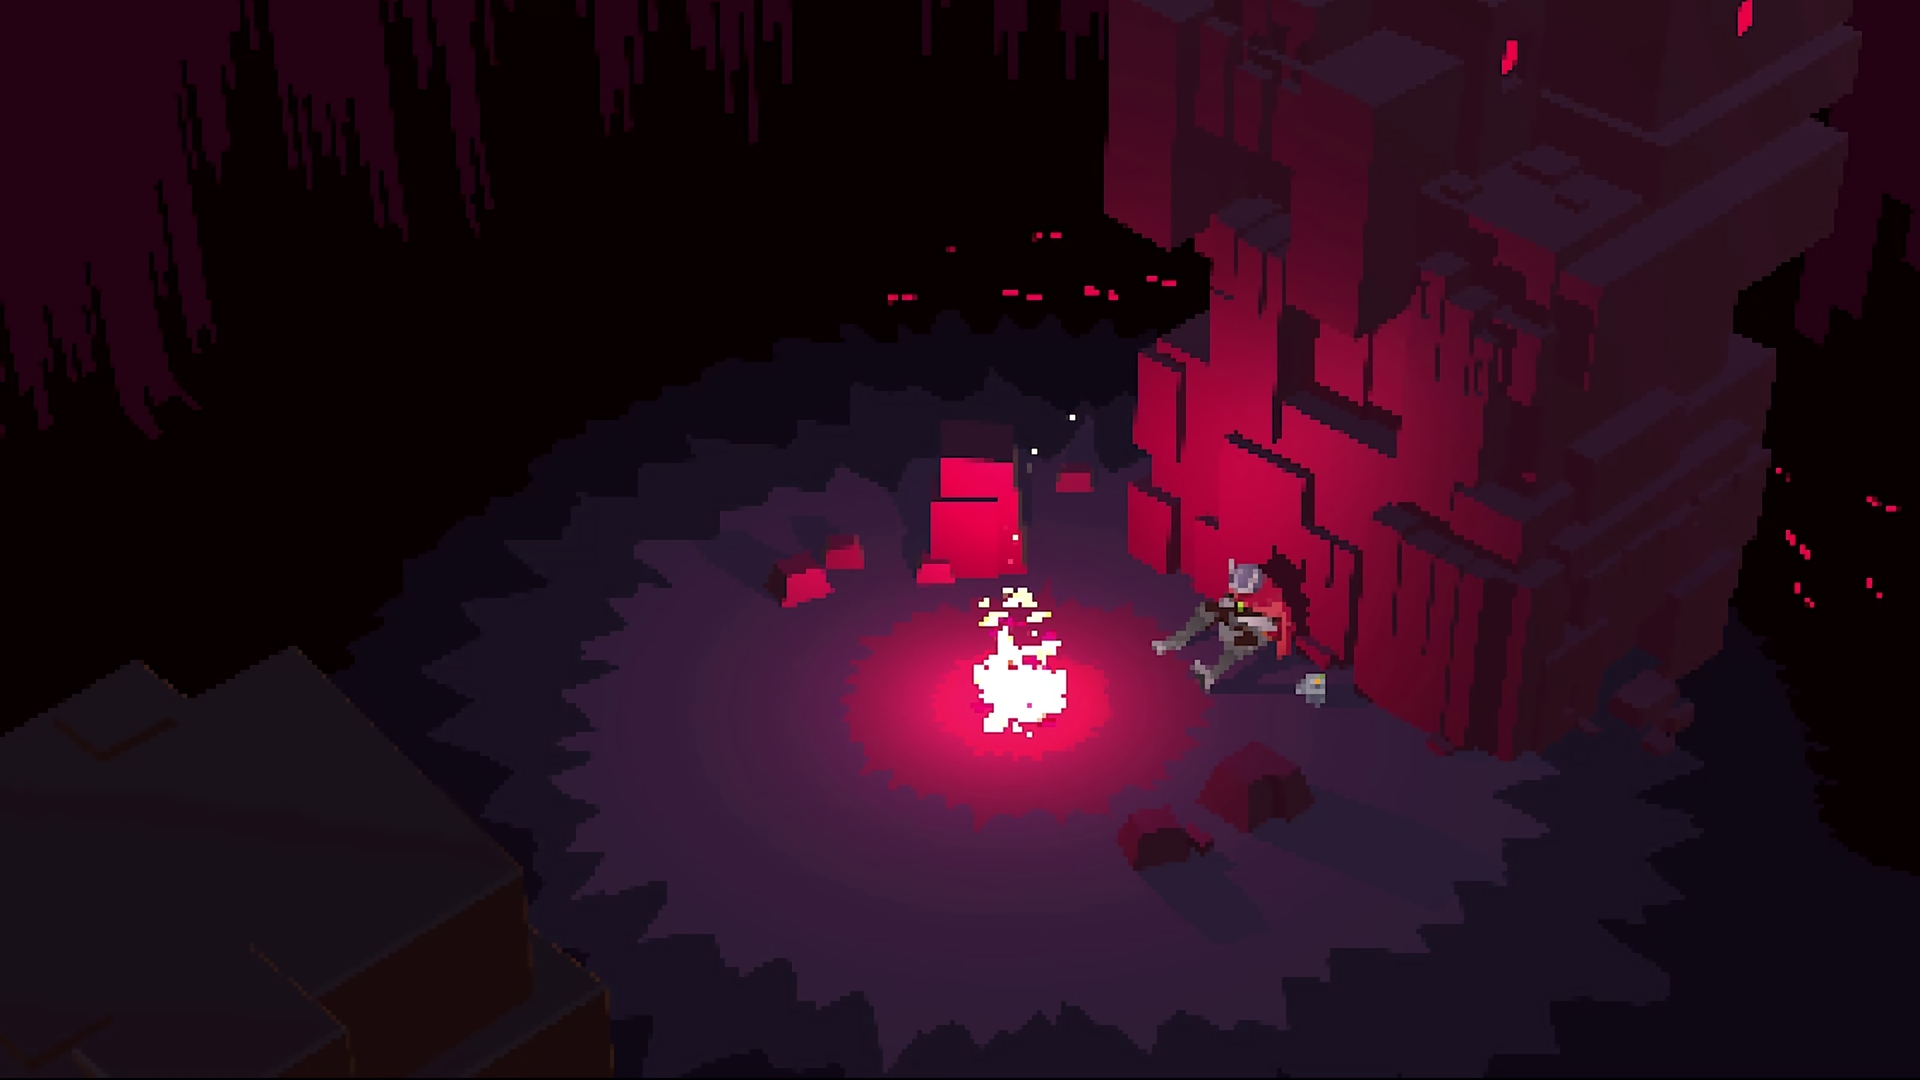 Hyper Light Drifter Wallpaper 1920x1080 Posted By Ryan Sellers